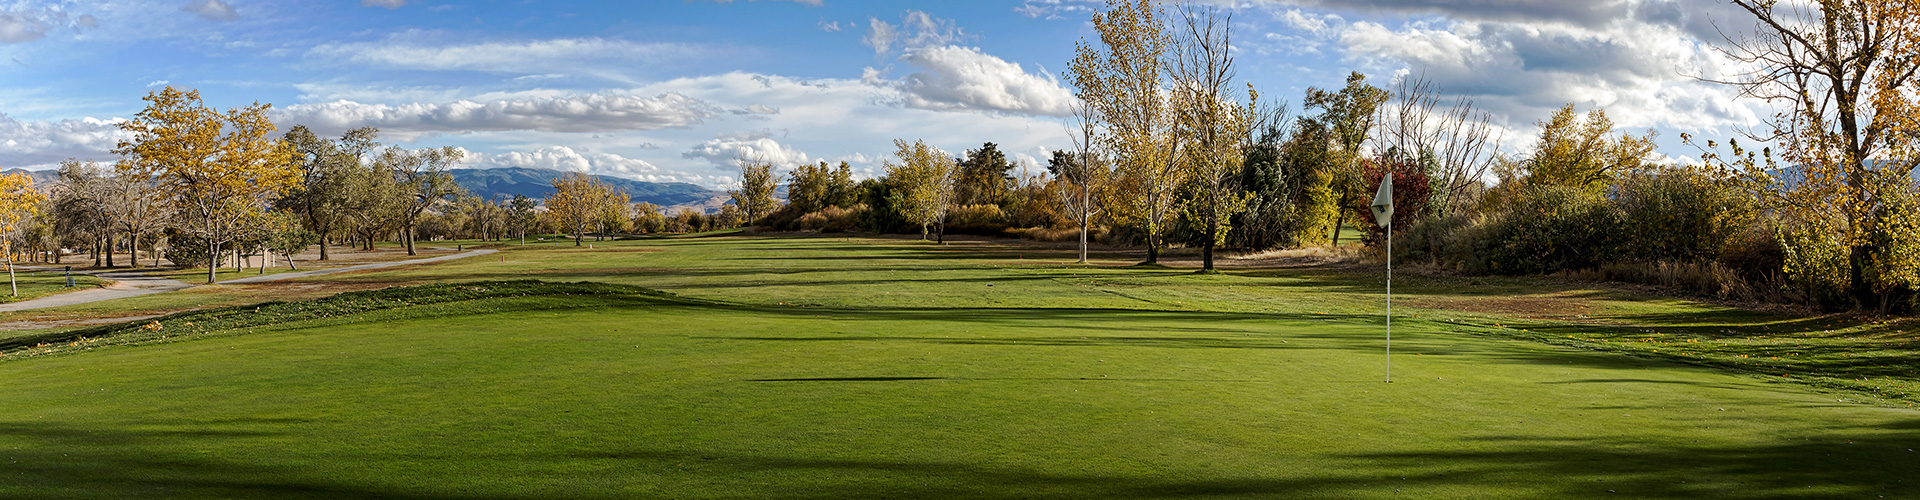 Washoe Golf Course